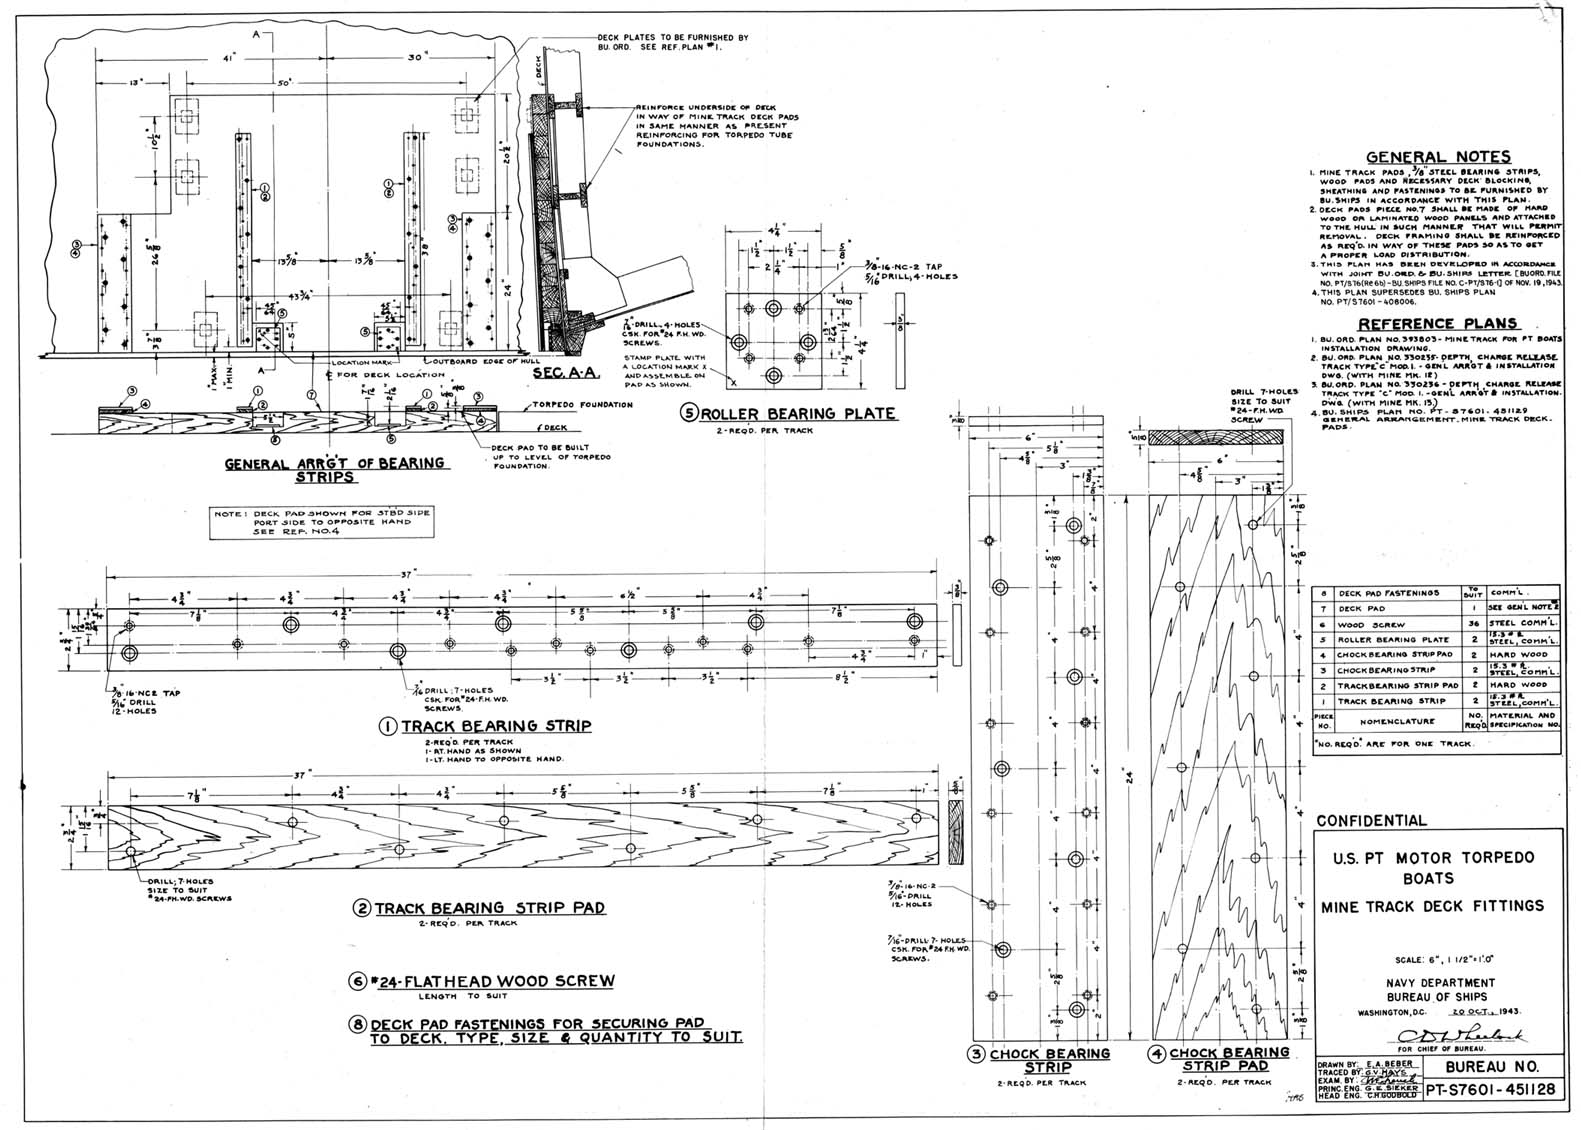 Elco pt boat plans Here ~ Boat Builder plan